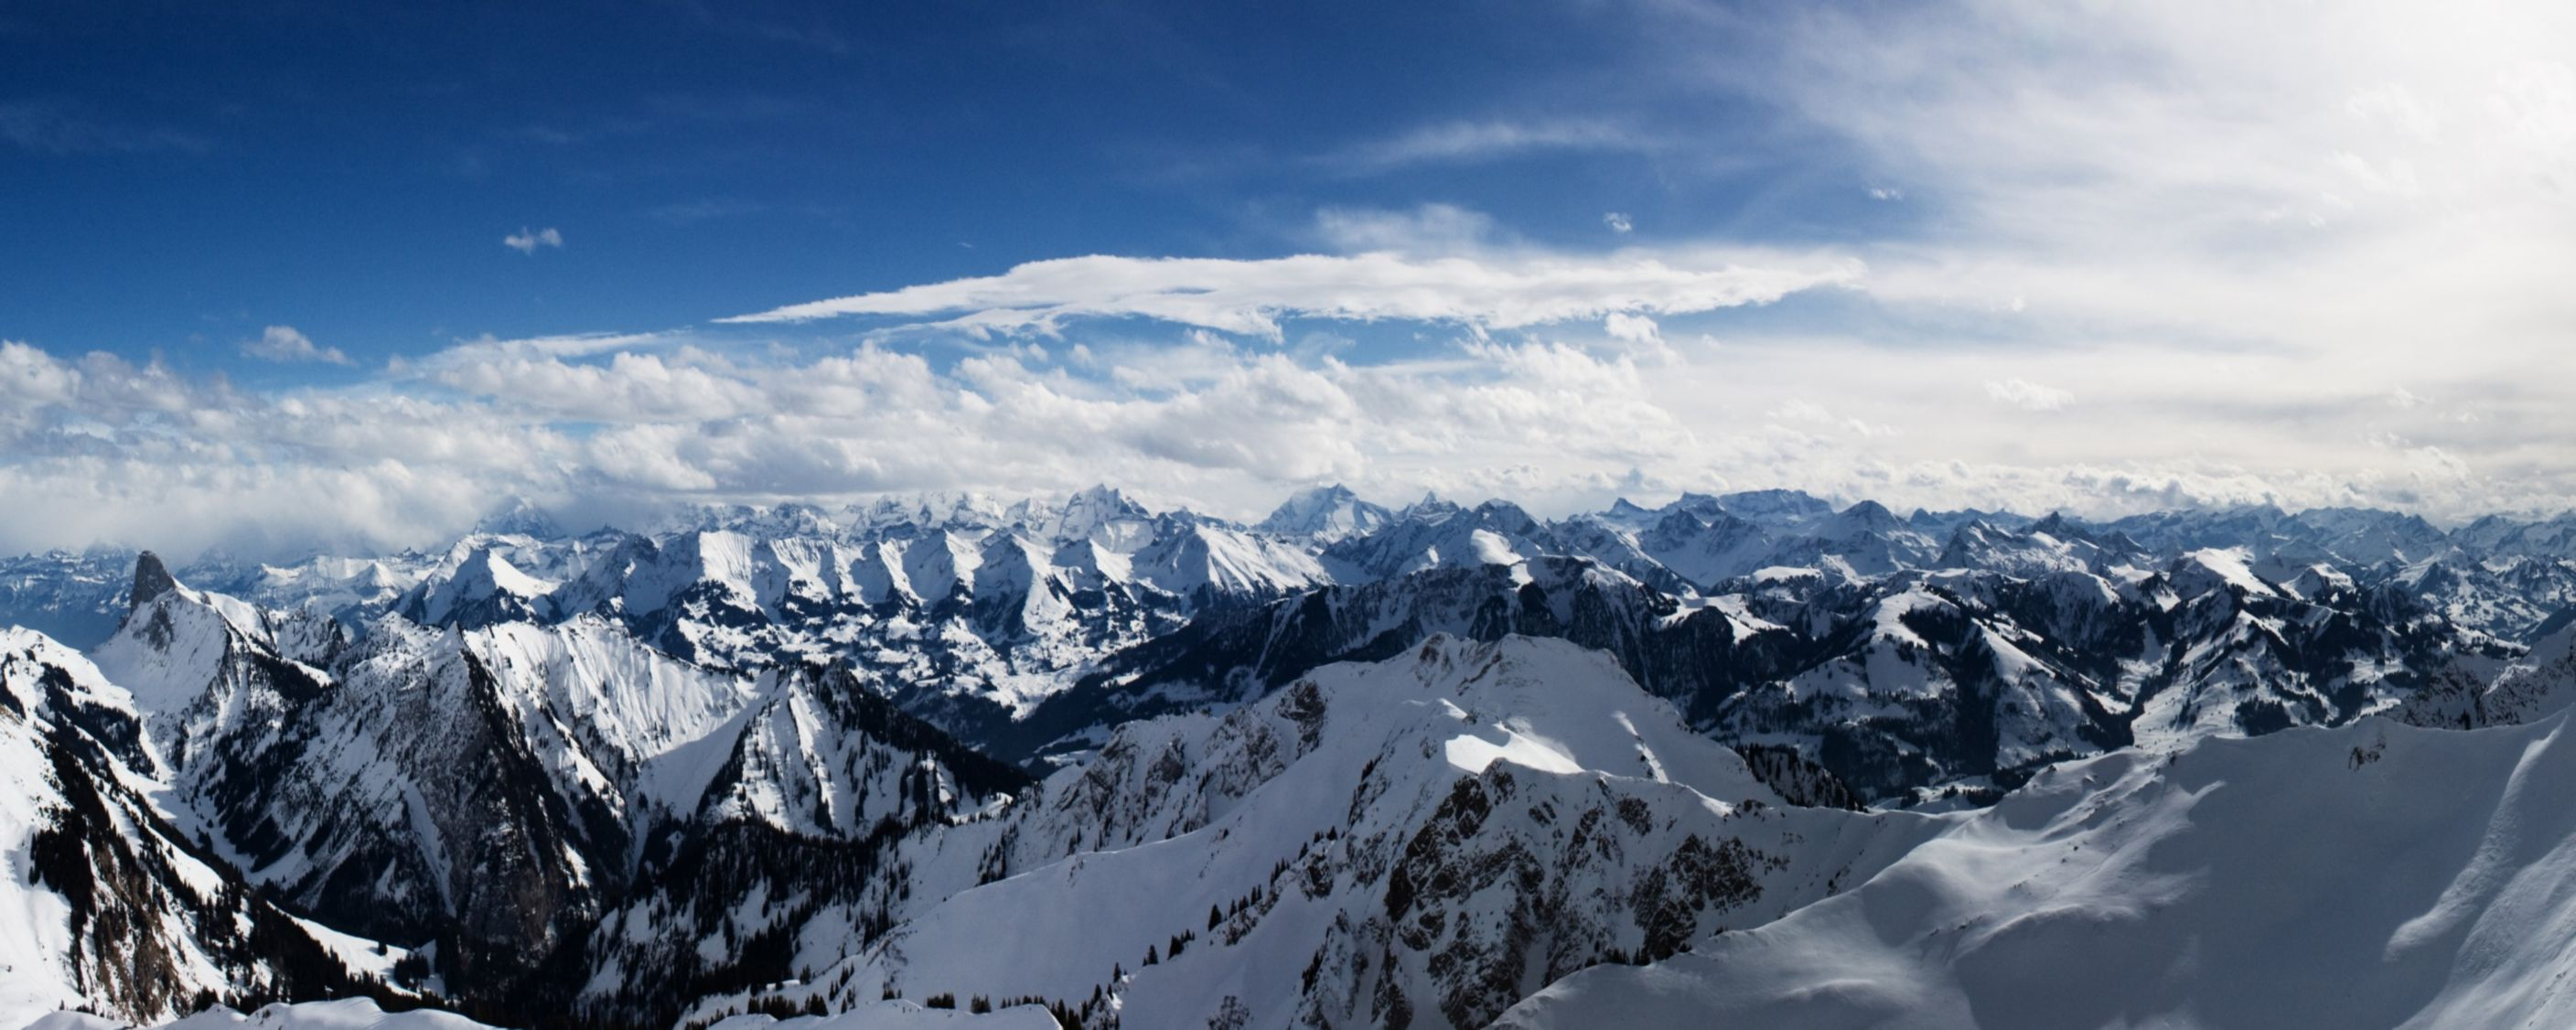 Download free HD Alps Mountains Dual Monitor Other Wallpaper, image